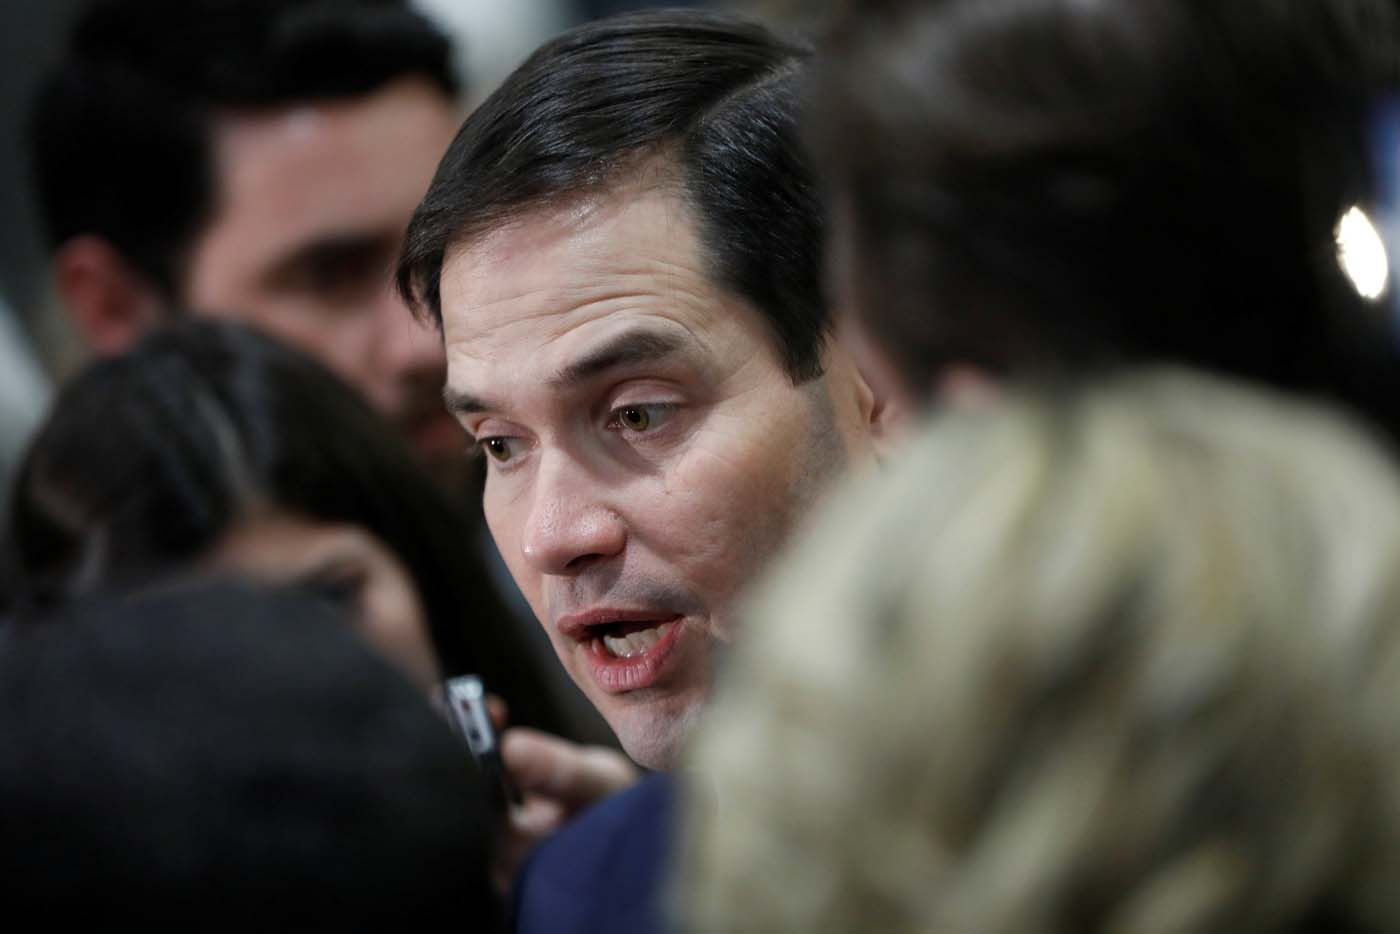 Senator Marco Rubio (R-FL) speaks with reporters after a classified briefing on the airstrikes launched against the Syrian military, at the U.S. Capitol in Washington, U.S., April 7, 2017. REUTERS/Aaron P. Bernstein